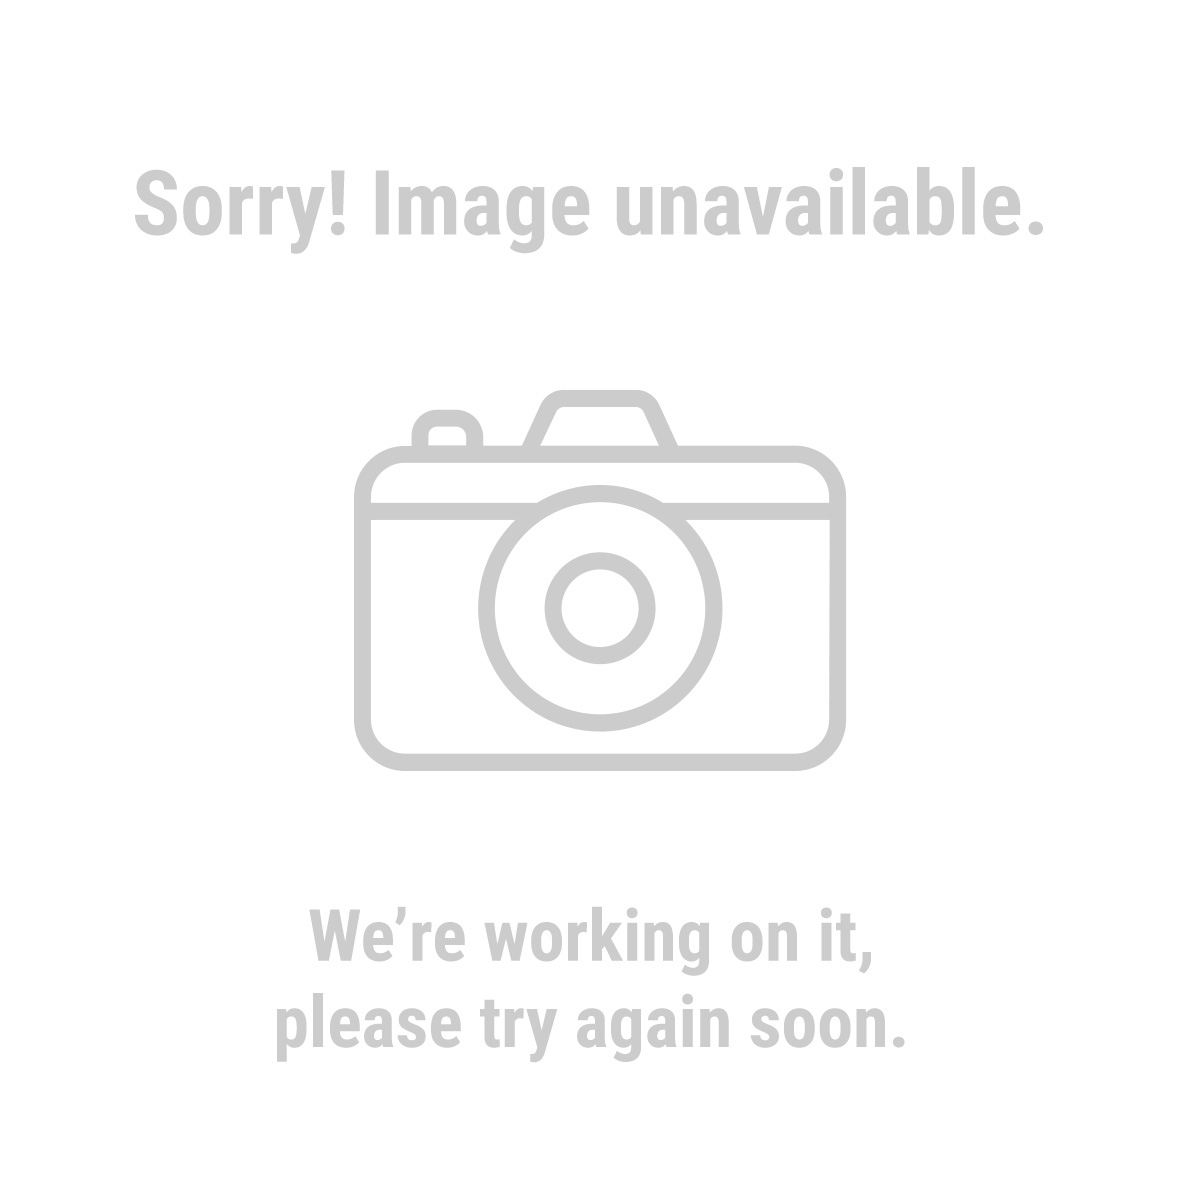 Pittsburgh 93958 7 Piece Pick and Hook Set